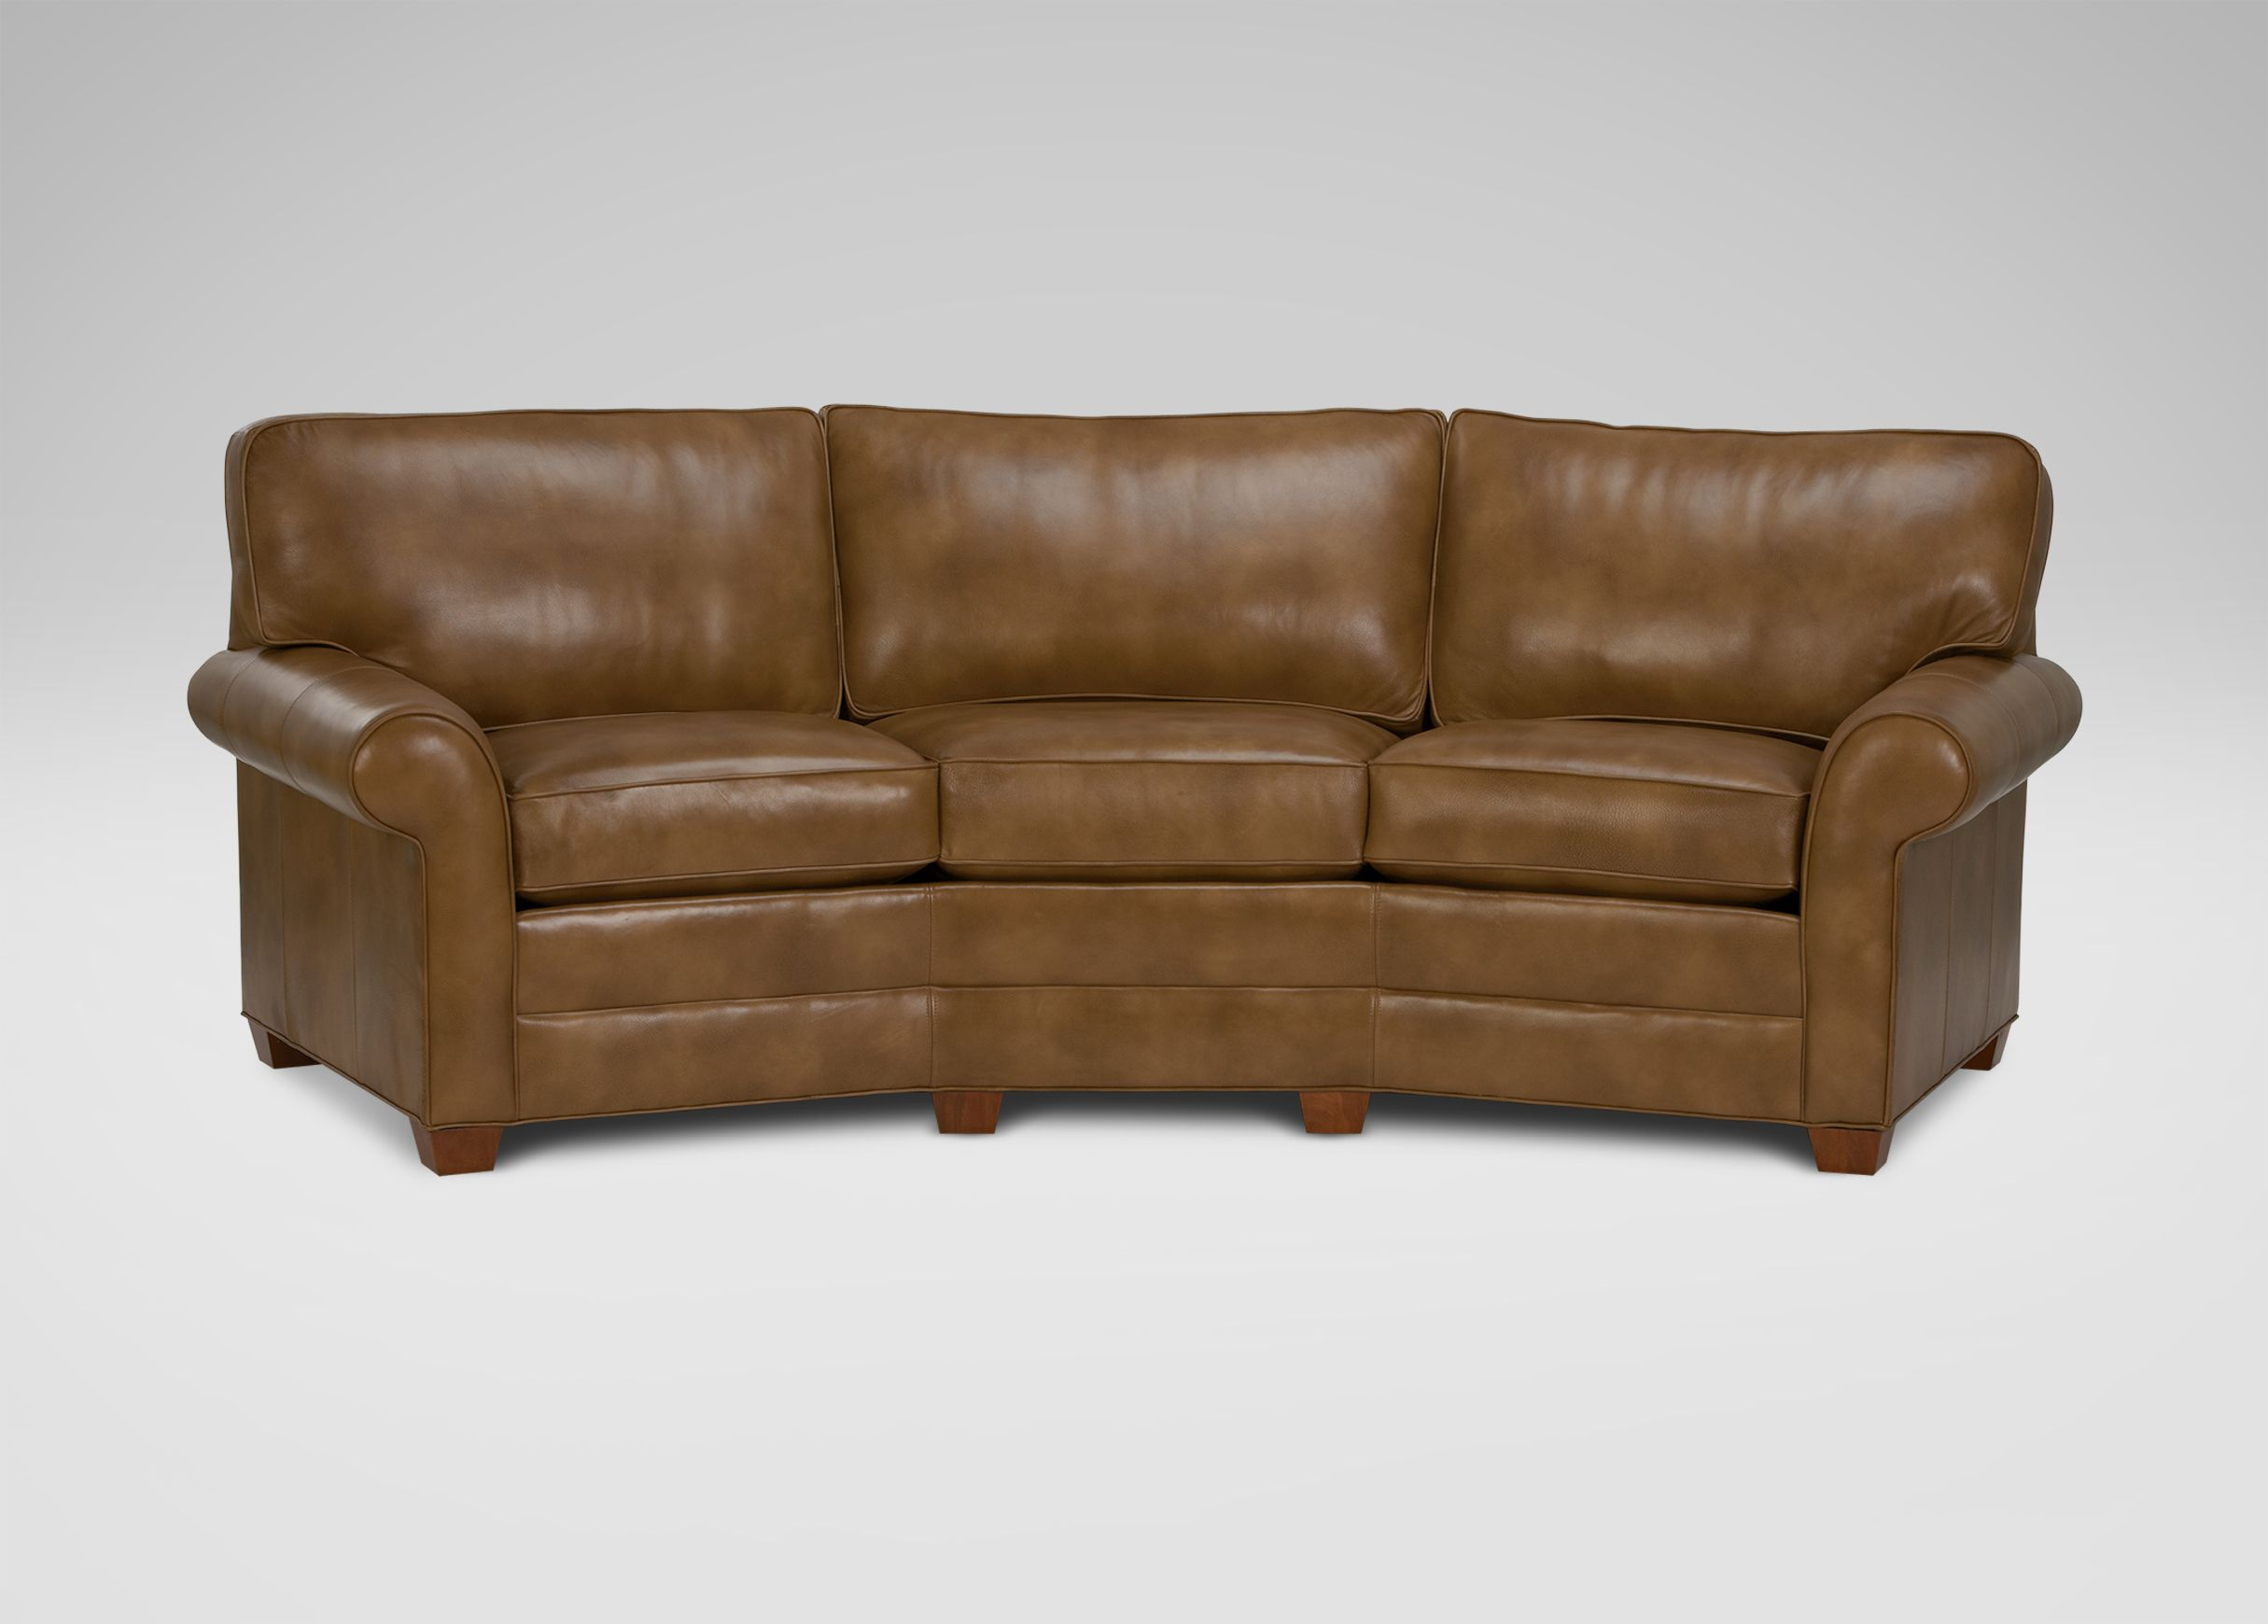 Chat It Up In The Conversation Sofa That Boasts A Gracefully Curved  Silhouette And Offers Ample